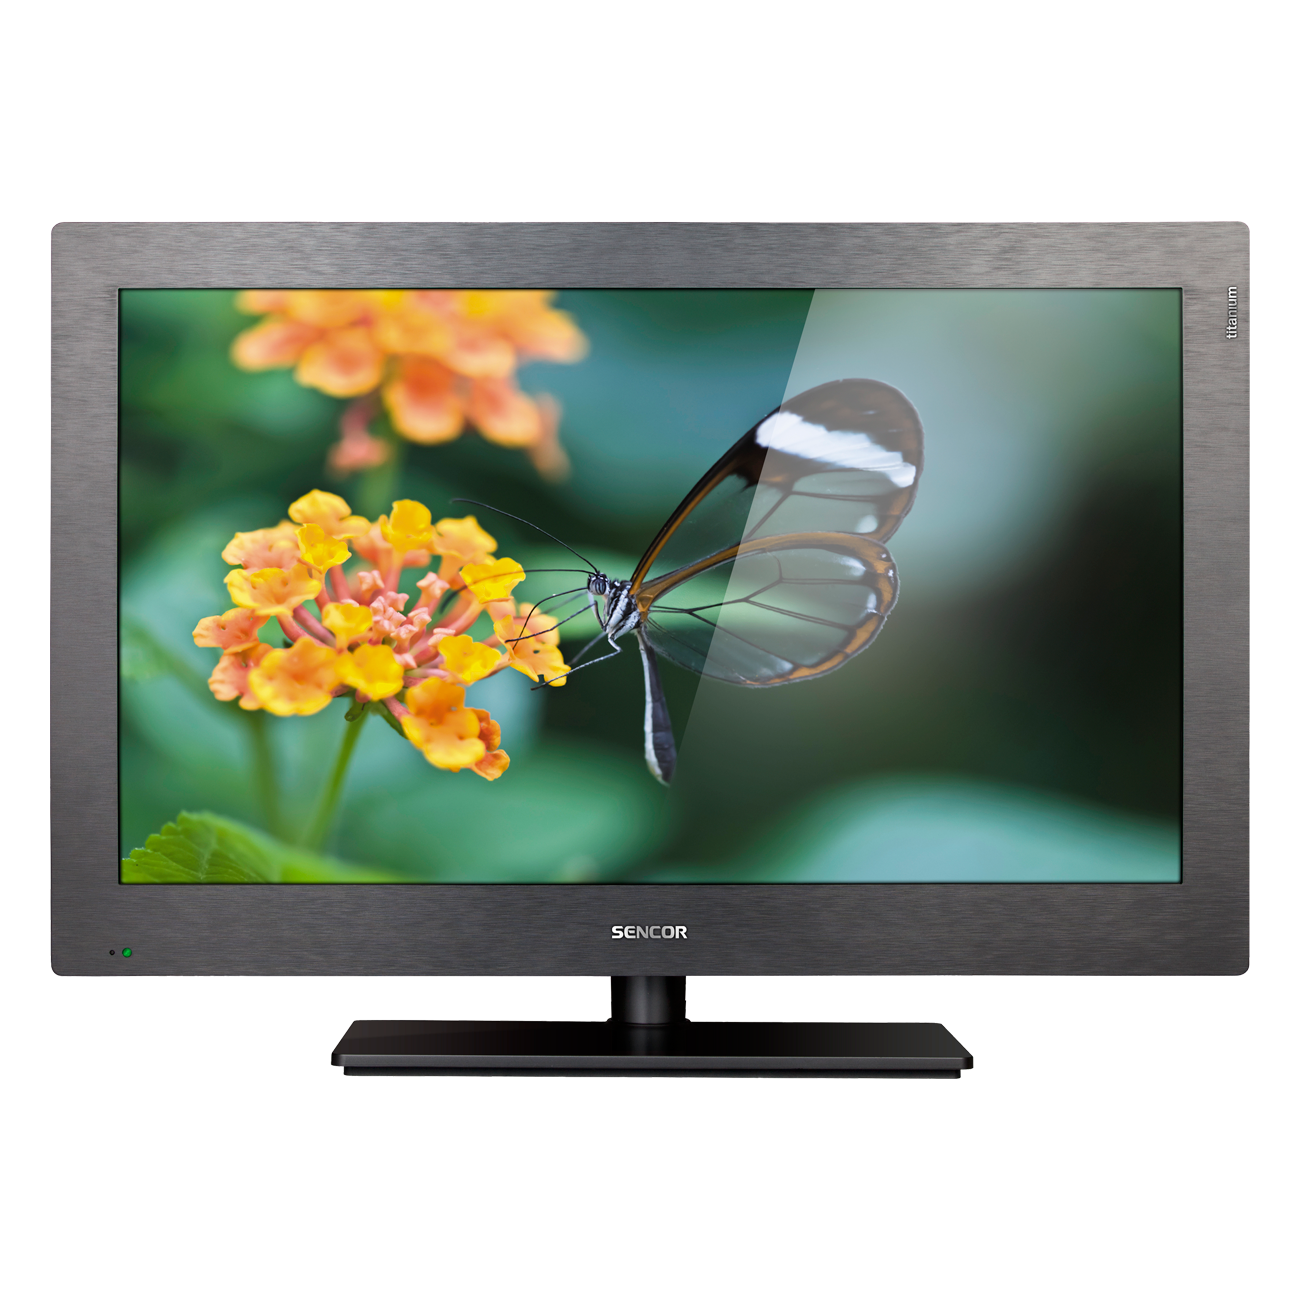 SLE 2651M4 titanium LCD Television with LED Backlight